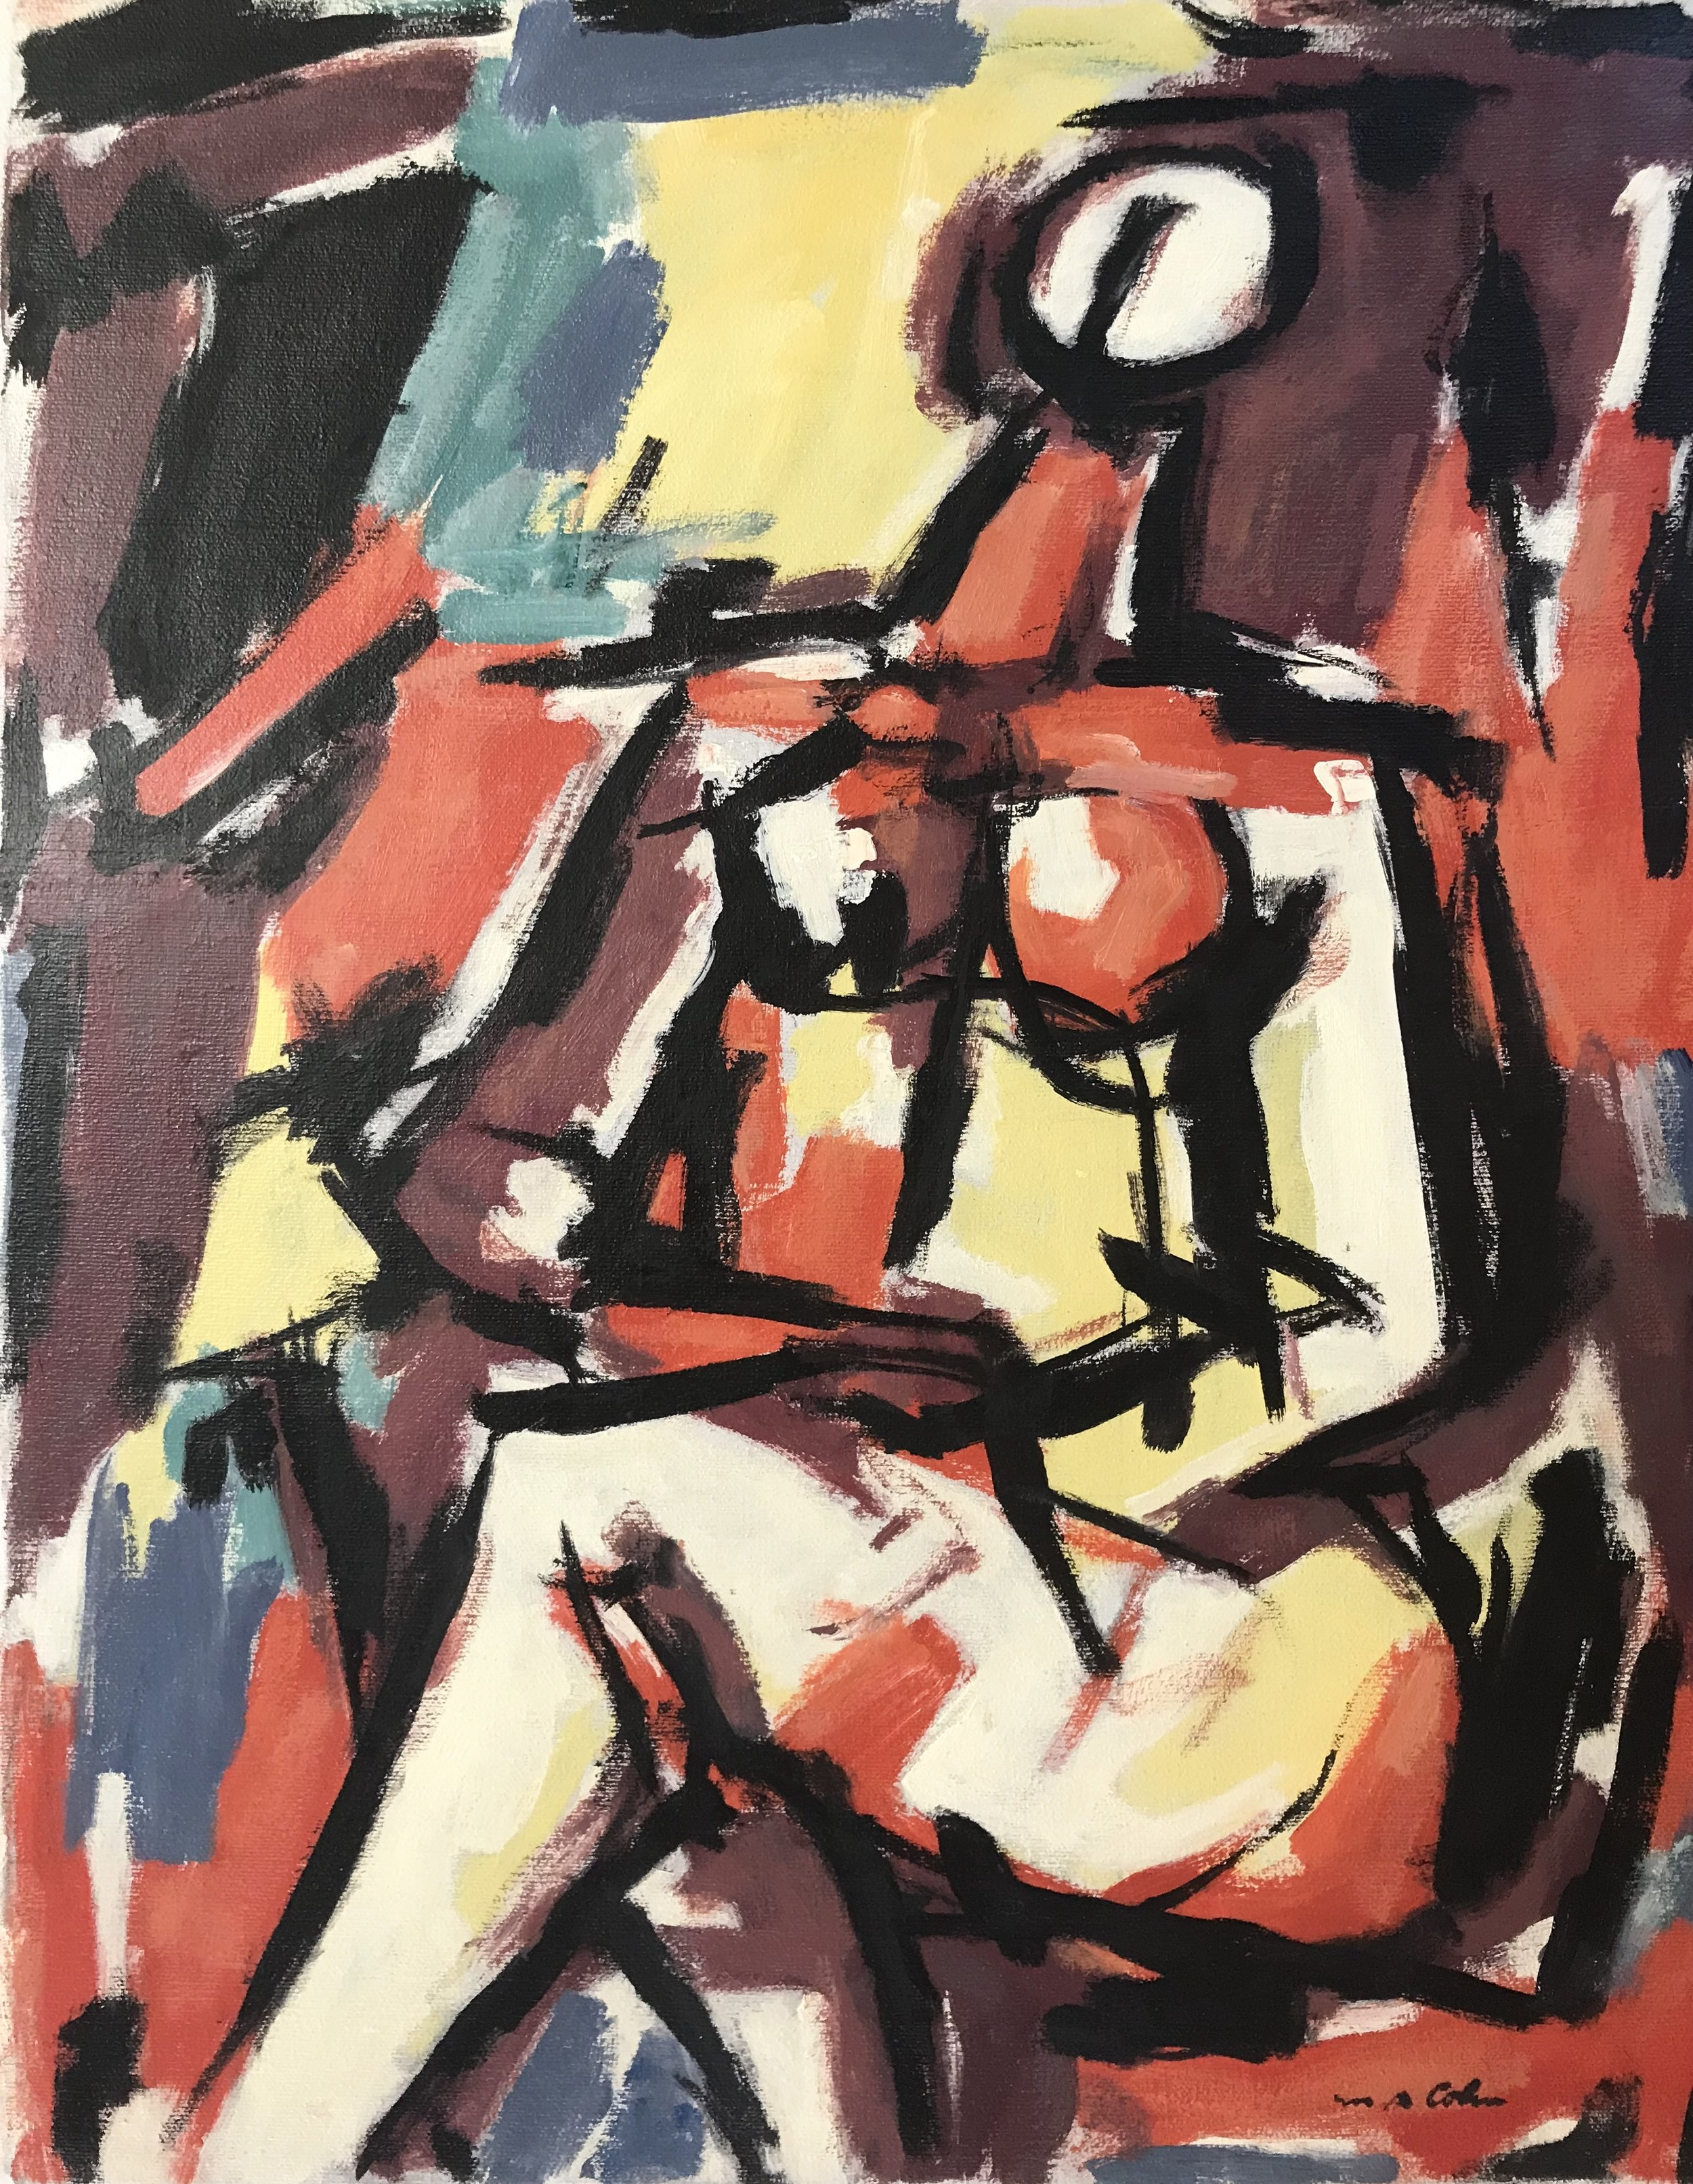 "Seated Figure 607-1975 by Max Arthur Cohn Oil on Canvas 16"" x 20"" 1975"